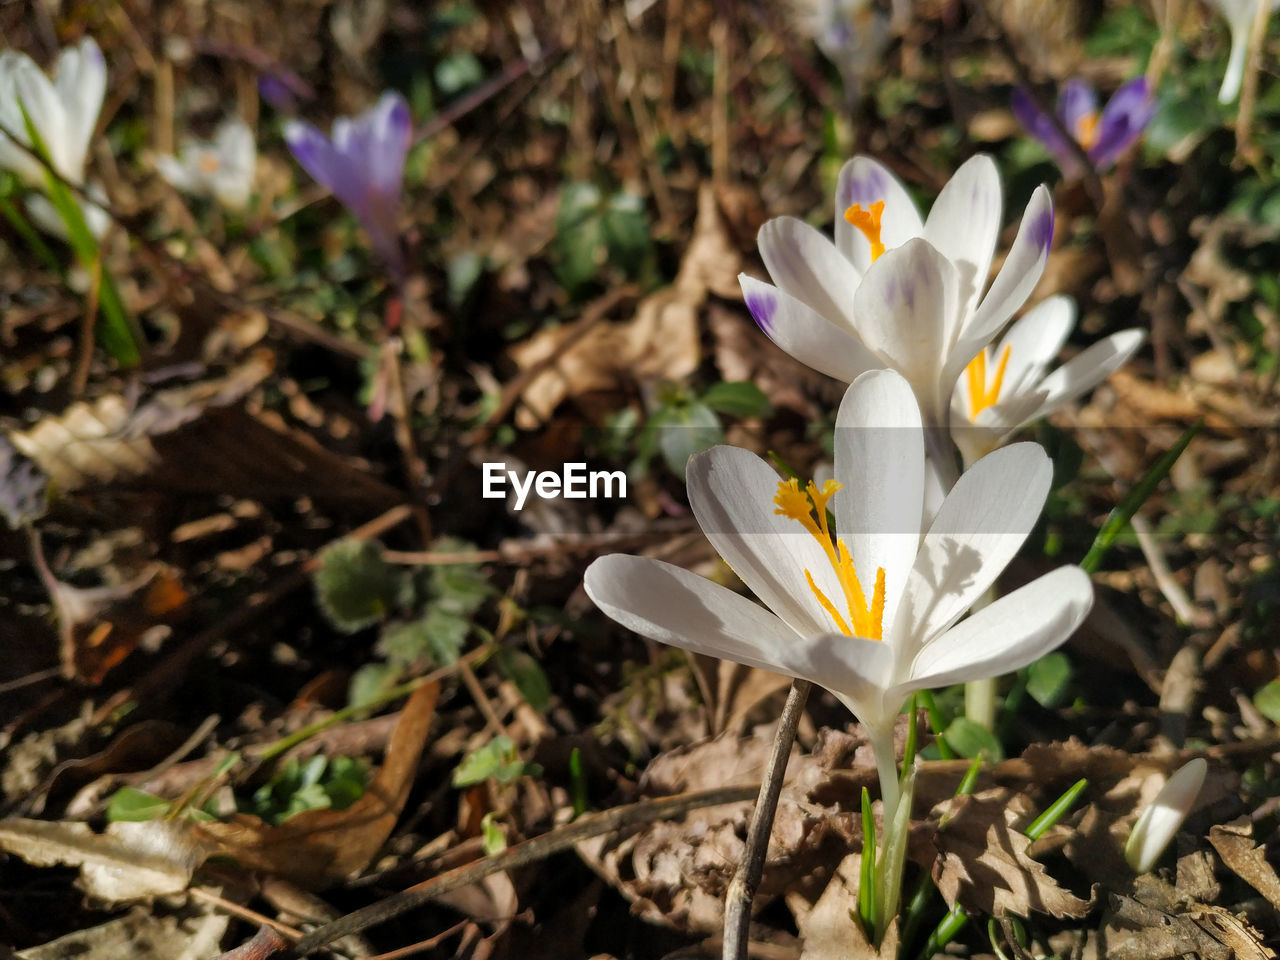 flowering plant, flower, vulnerability, beauty in nature, fragility, petal, freshness, plant, growth, close-up, flower head, inflorescence, nature, crocus, land, iris, field, no people, white color, focus on foreground, pollen, purple